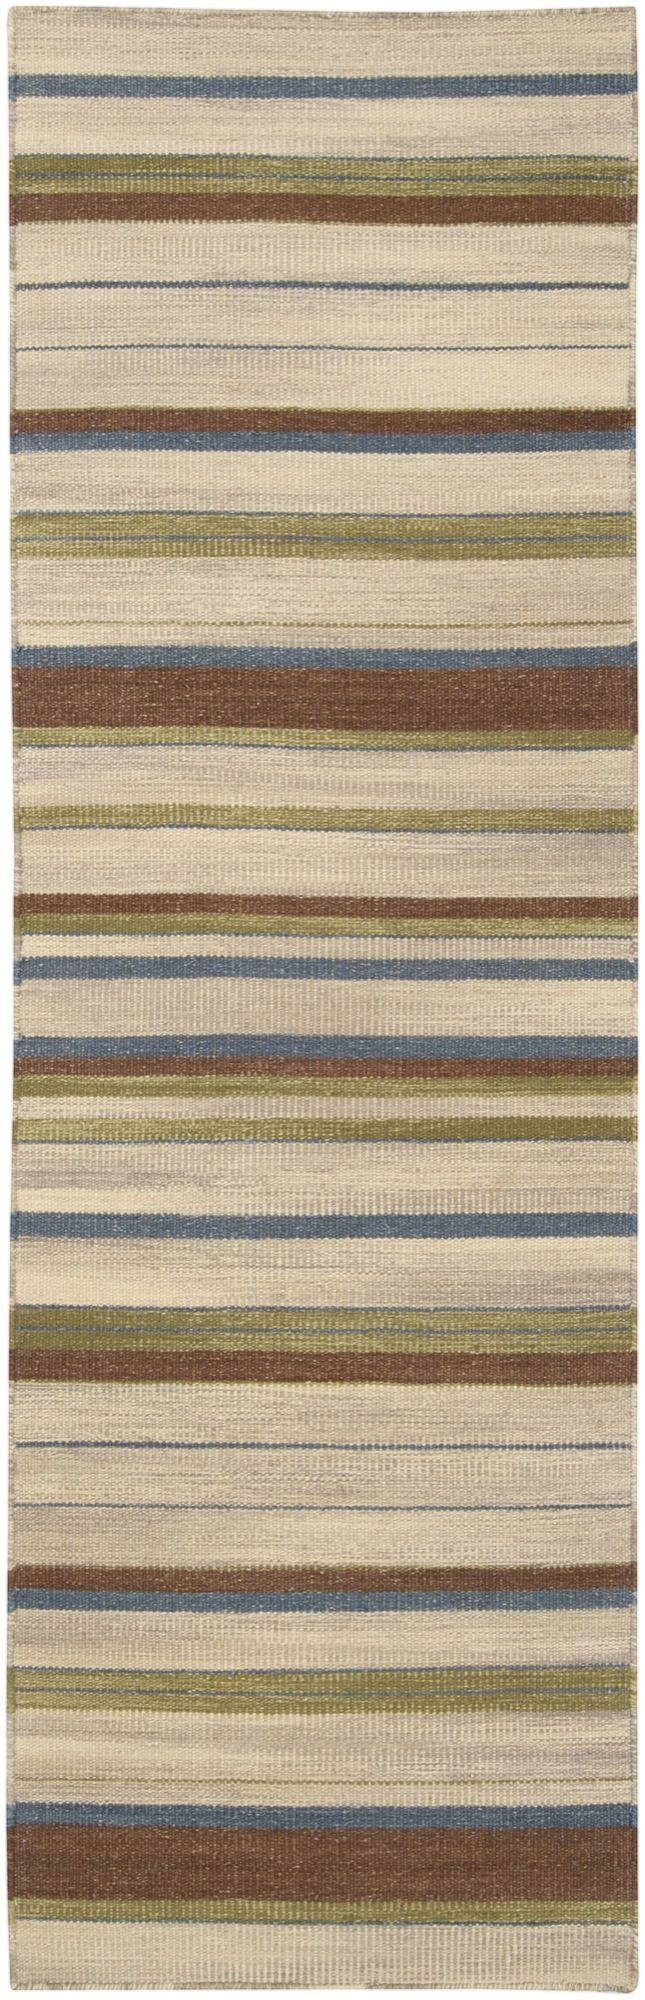 surya frontier solid/striped area rug collection